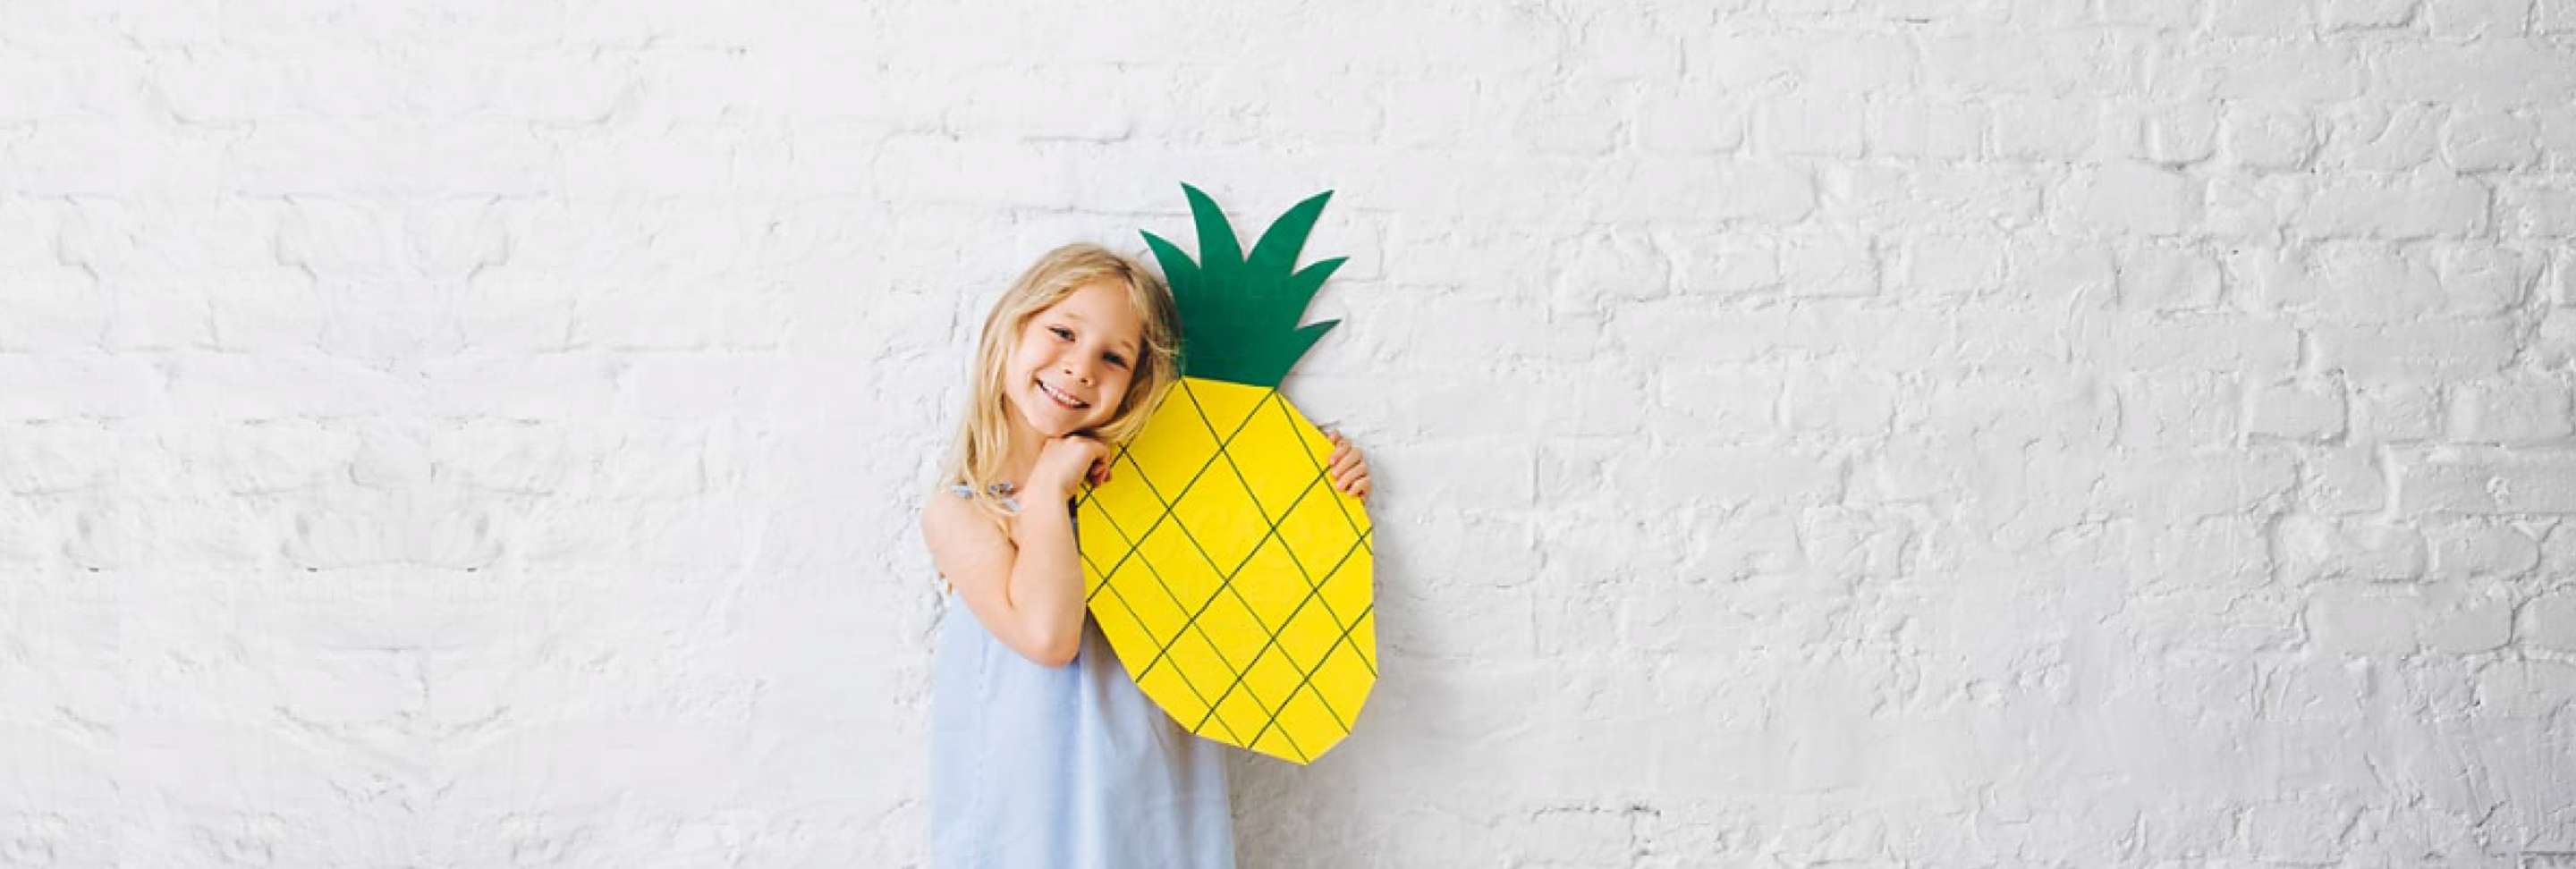 A little girl hugs a pineapple cardboard cut-out in front of a white brick wall